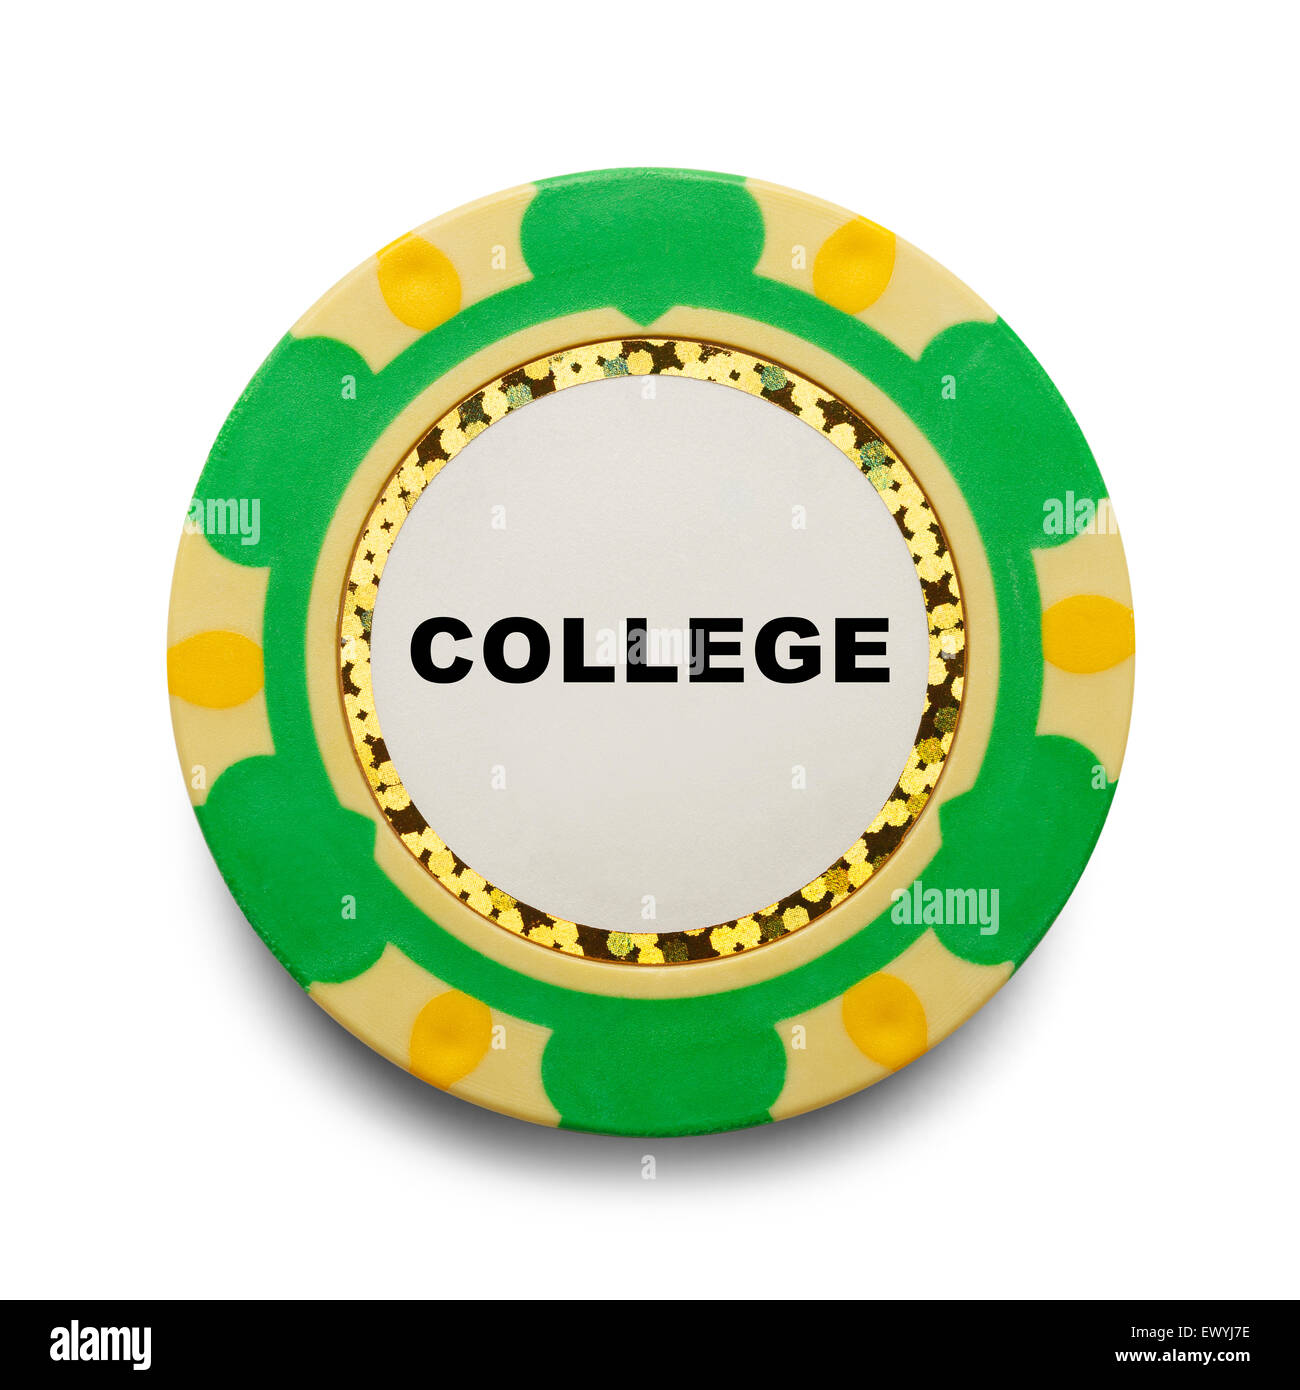 College Casino Chip Gamble Isolated on White Background. - Stock Image